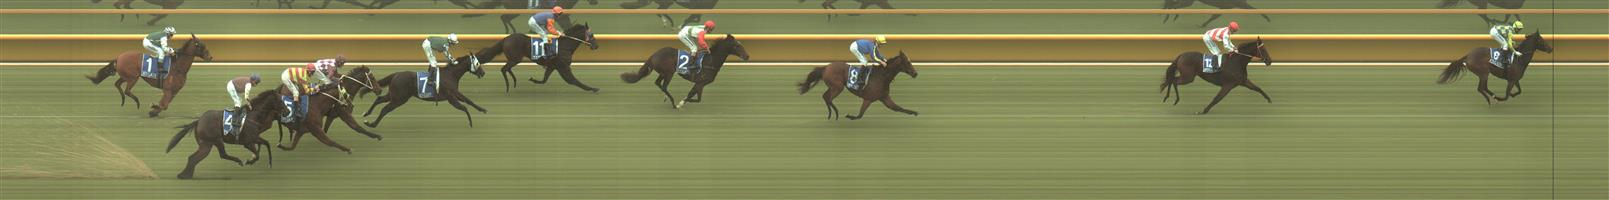 SEYMOUR Race 2 No. 8 Fancy Liquor @ $3.90 (1.5 UNITS WIN)  Result: 3rd at SP $5.00. Was behind the leader and winner on the turn, but the winner kicked clear on the turn and Fancy Liquor could only box on for third. Outcome -1.50 Units.